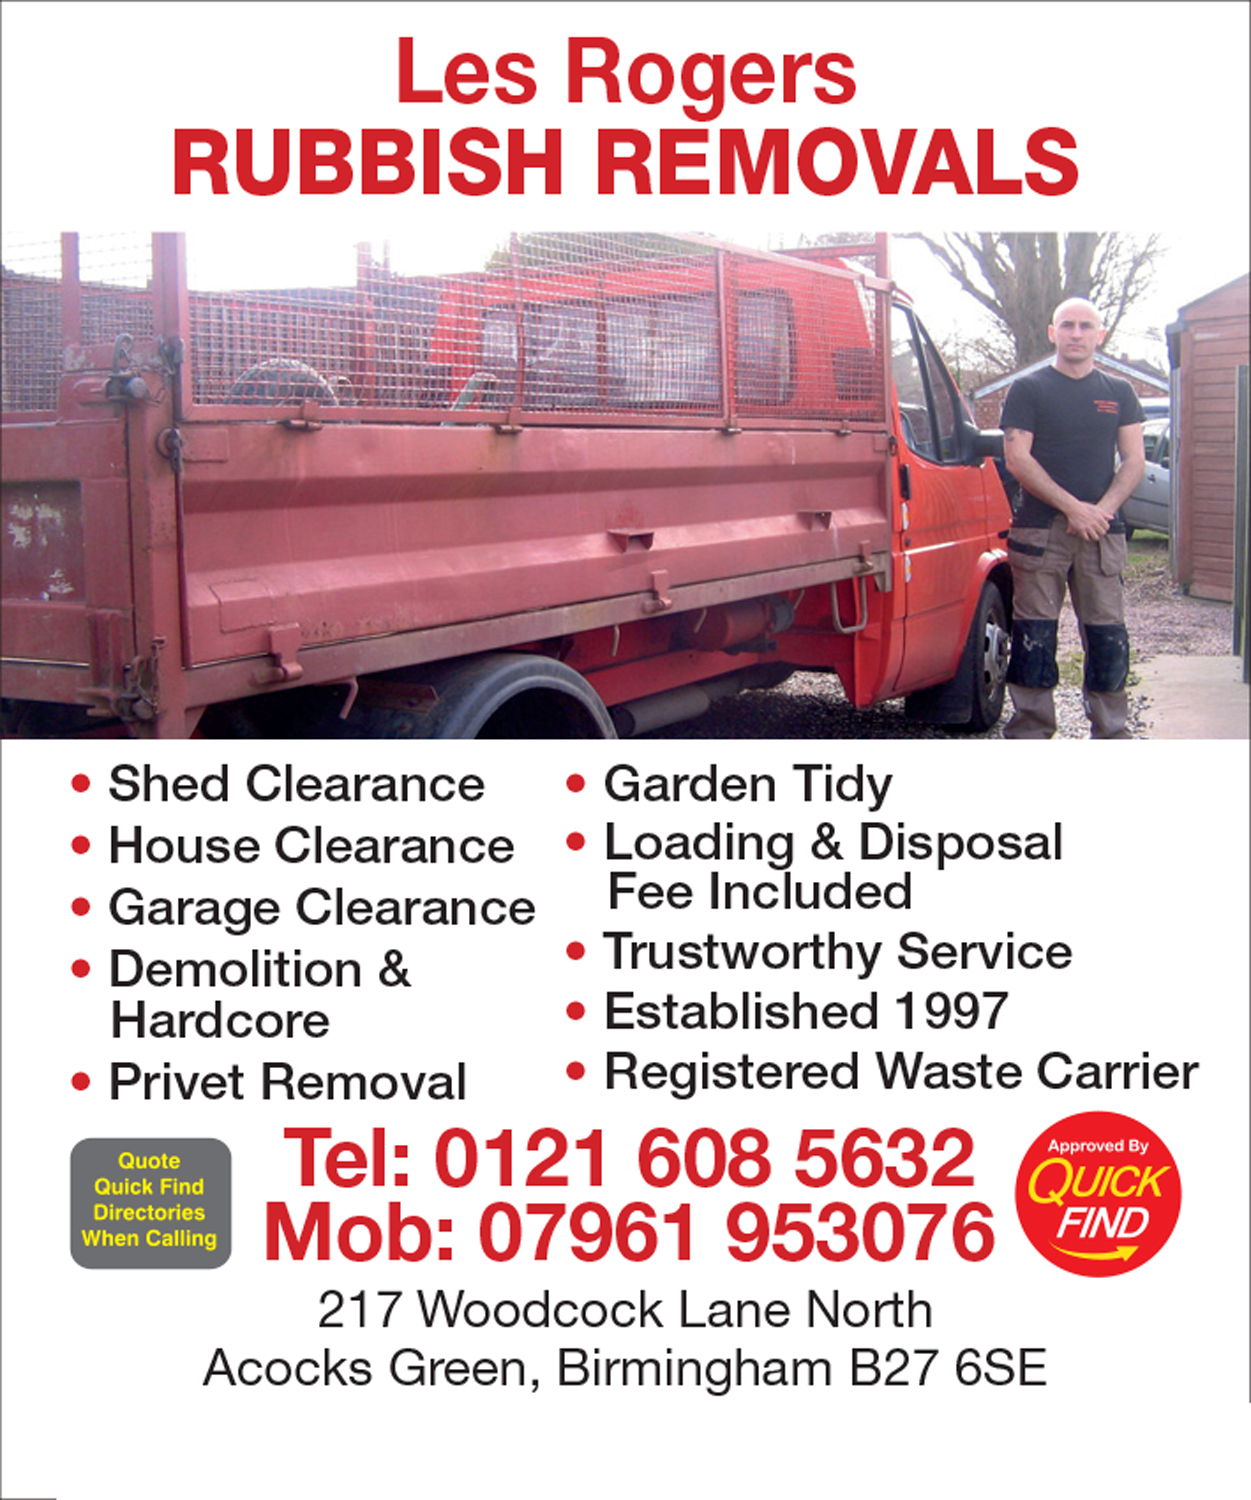 Les Rogers Rubbish Removal